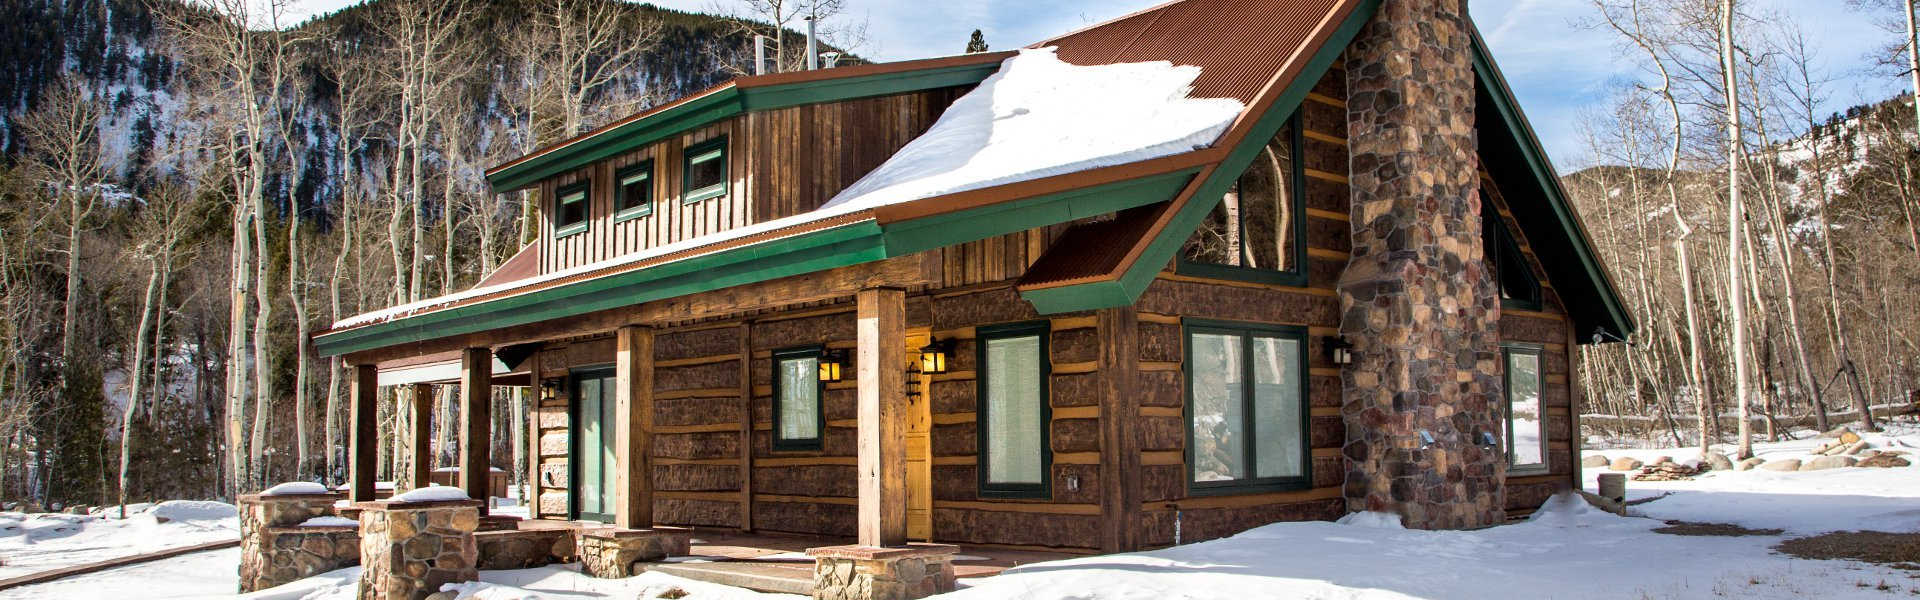 colorado log handcrafted pin home evergreen builder cabin packages kits cabins vail breckenridge anderson homes steamboat custom